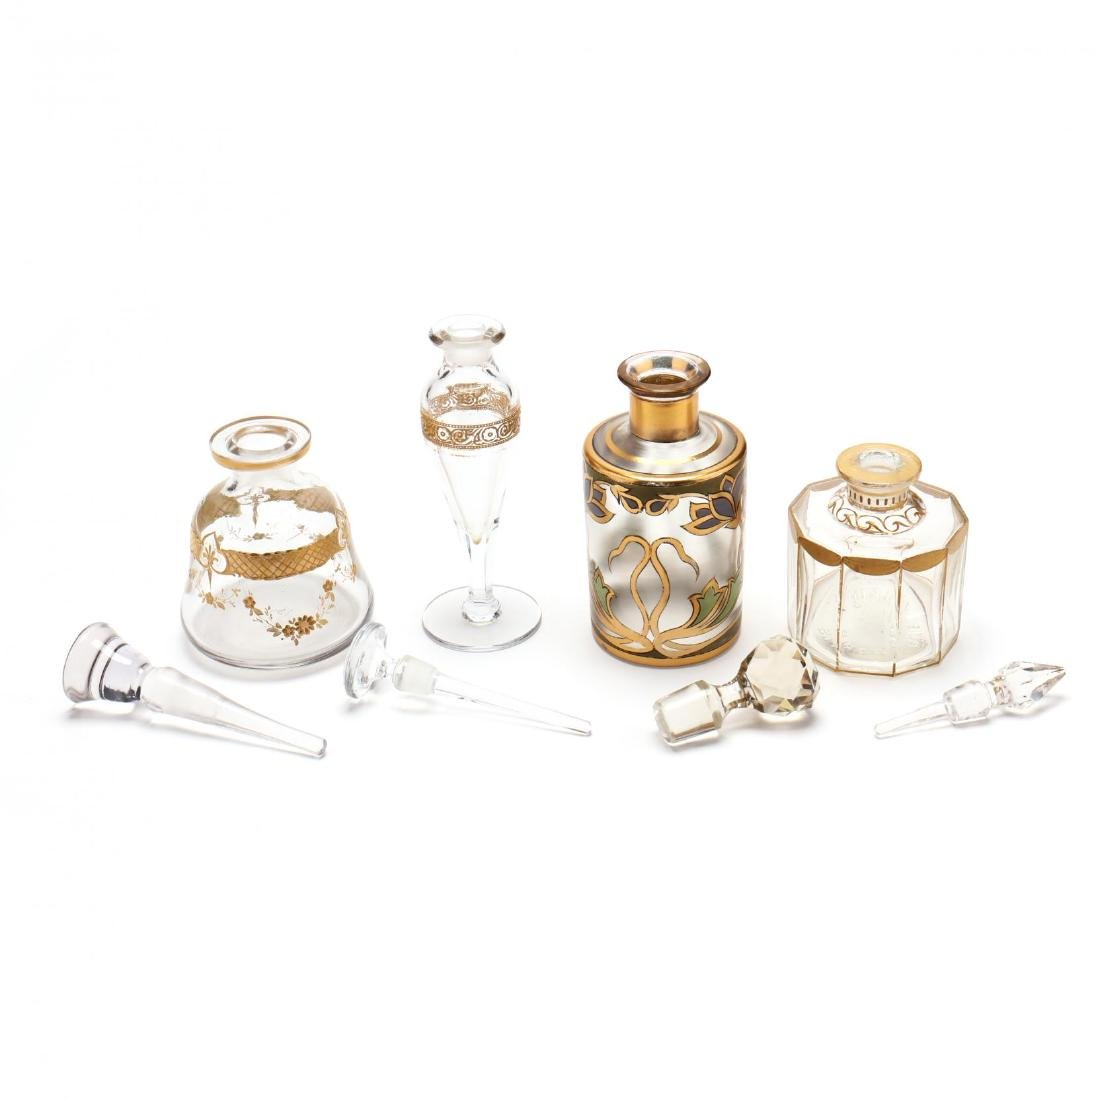 A Vintage Vanity Tray and Four Antique Scent Bottles - 5